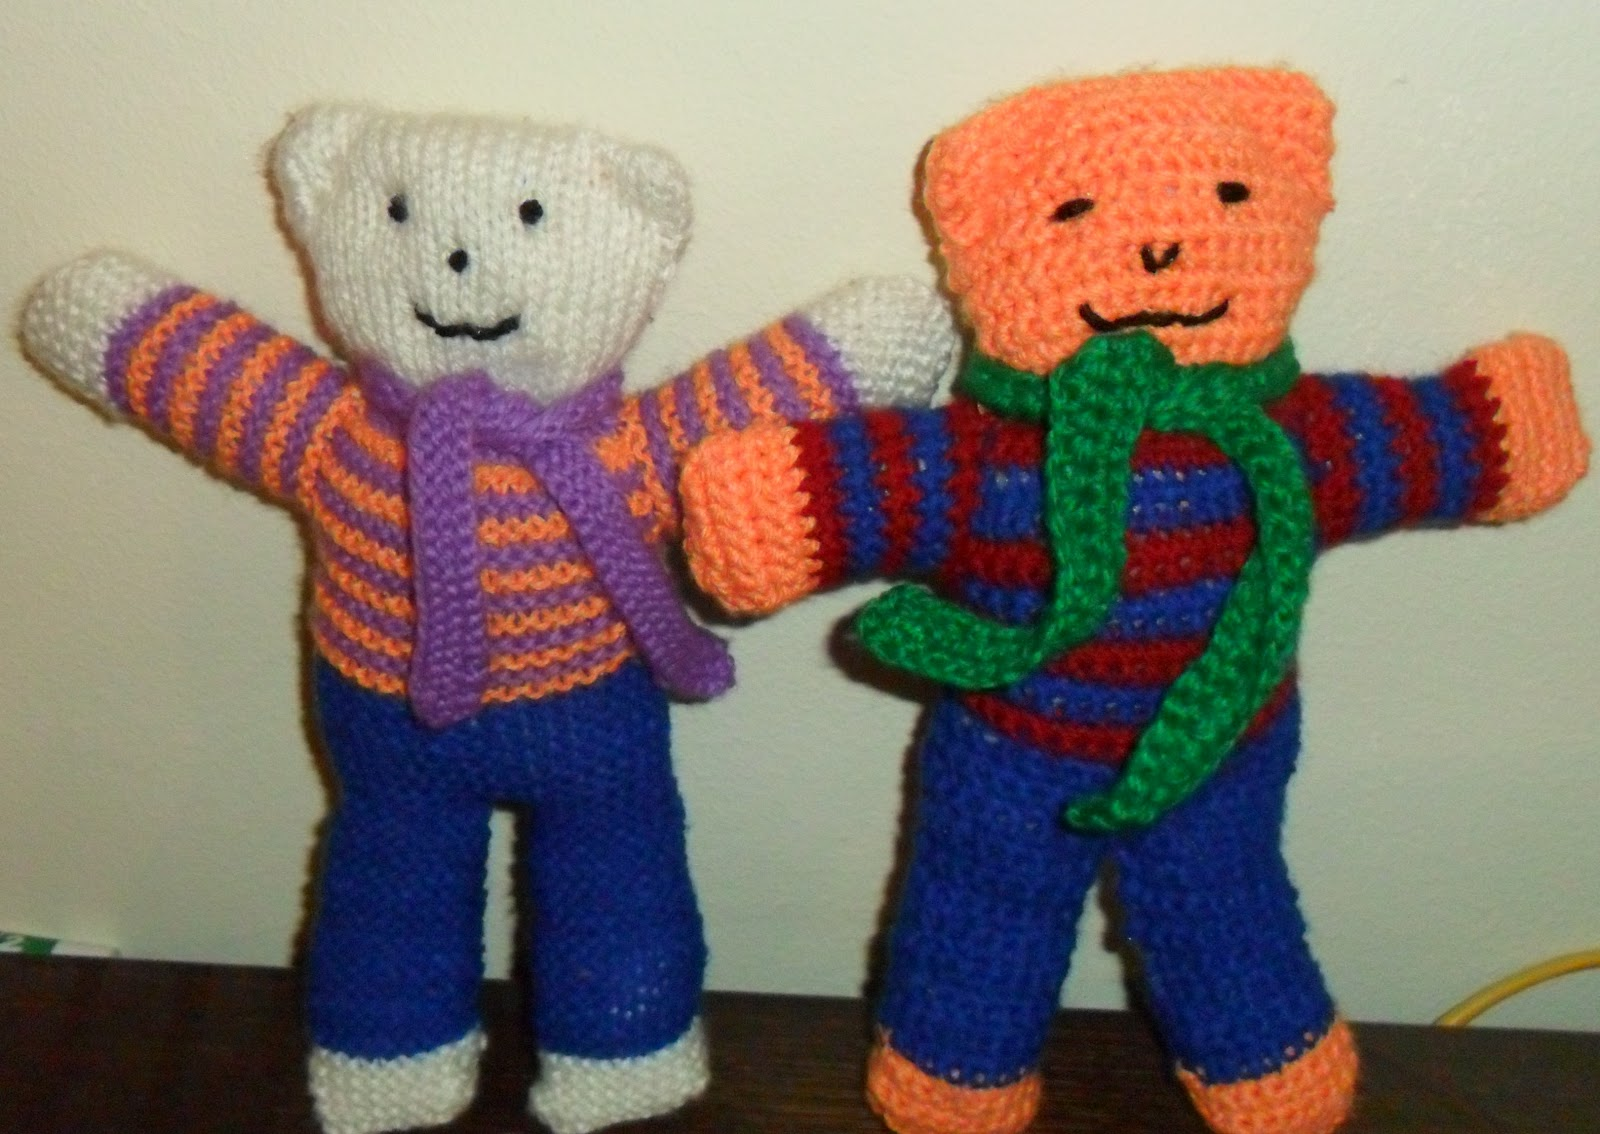 Knitted Teddy Bear Pattern For Charity : worth a knit: Charity Bears